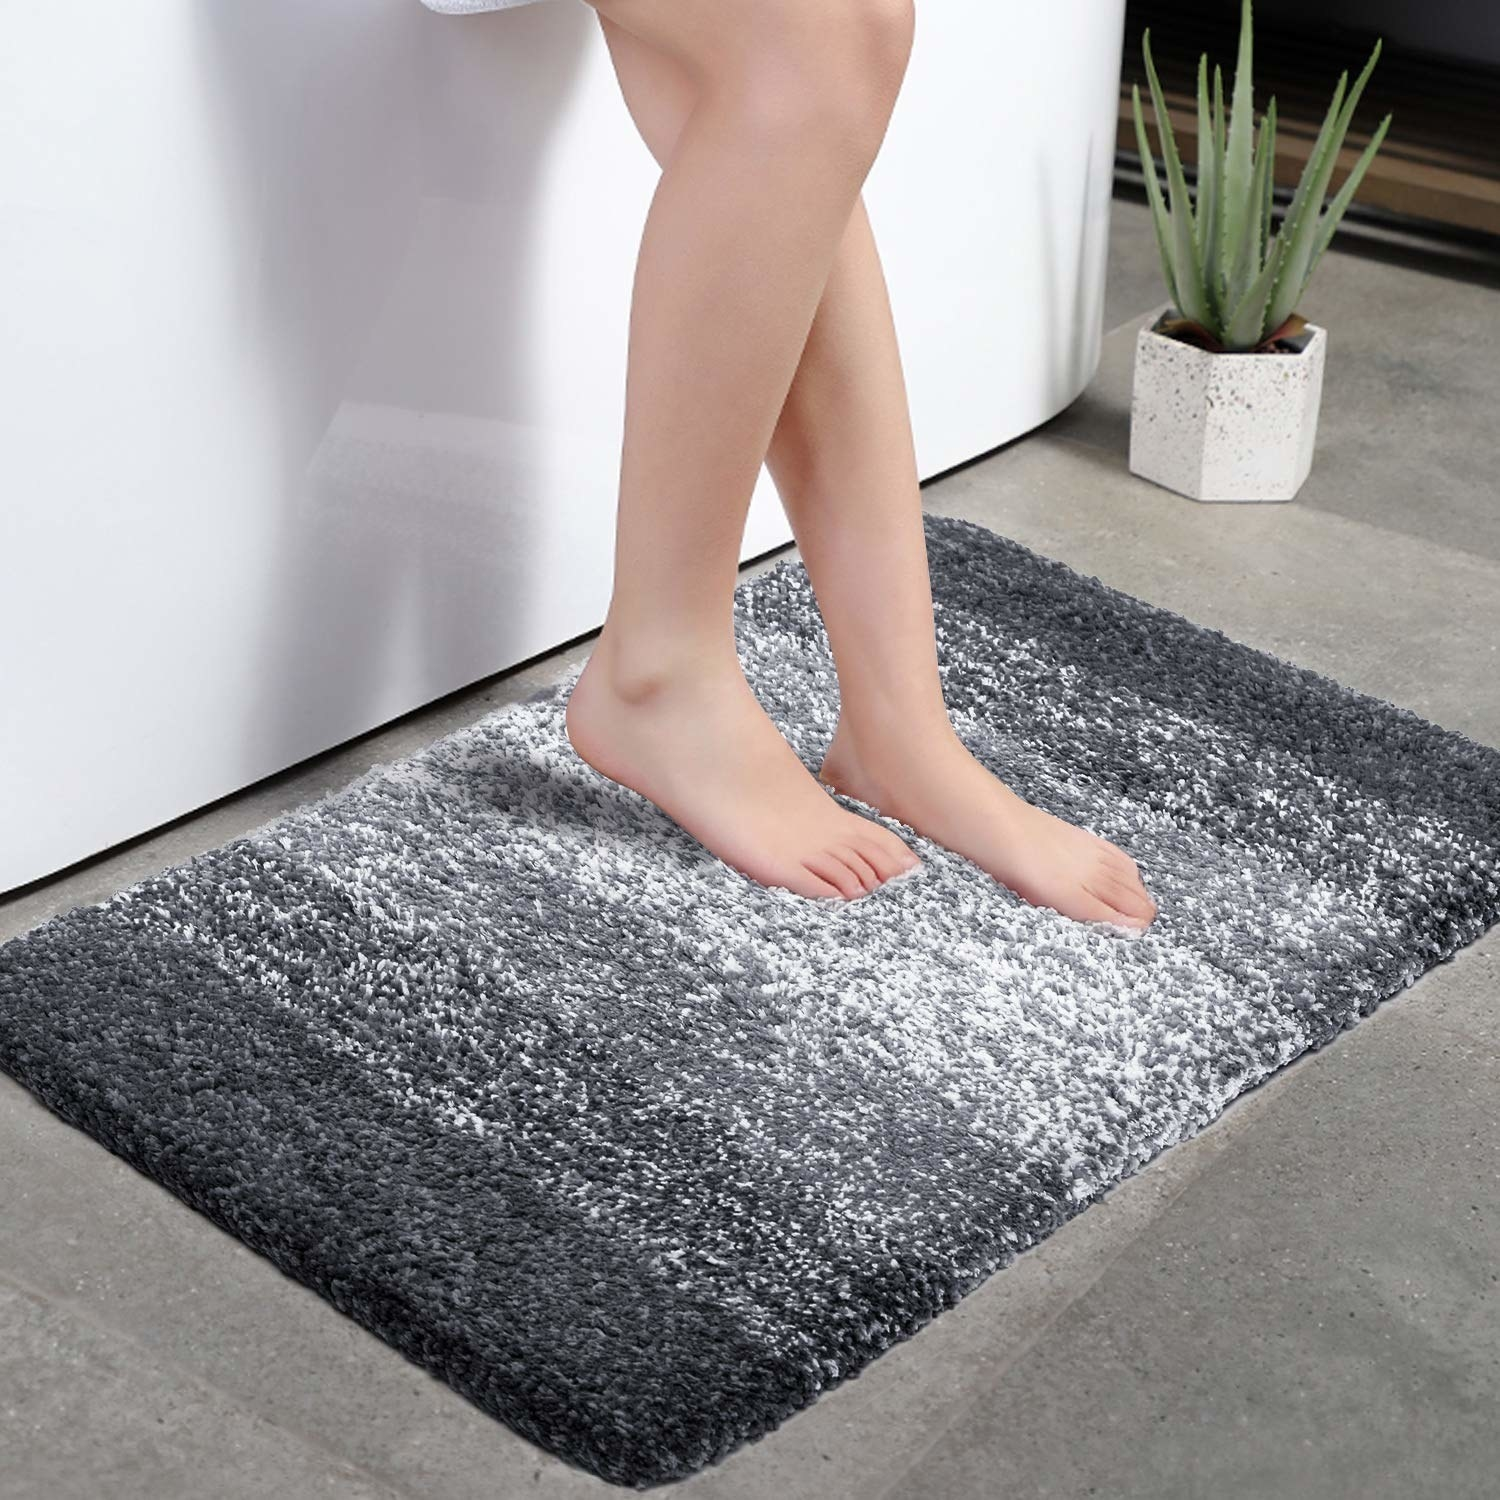 product image of someone putting their feet on a black and white gradient bathmat in front of a shower